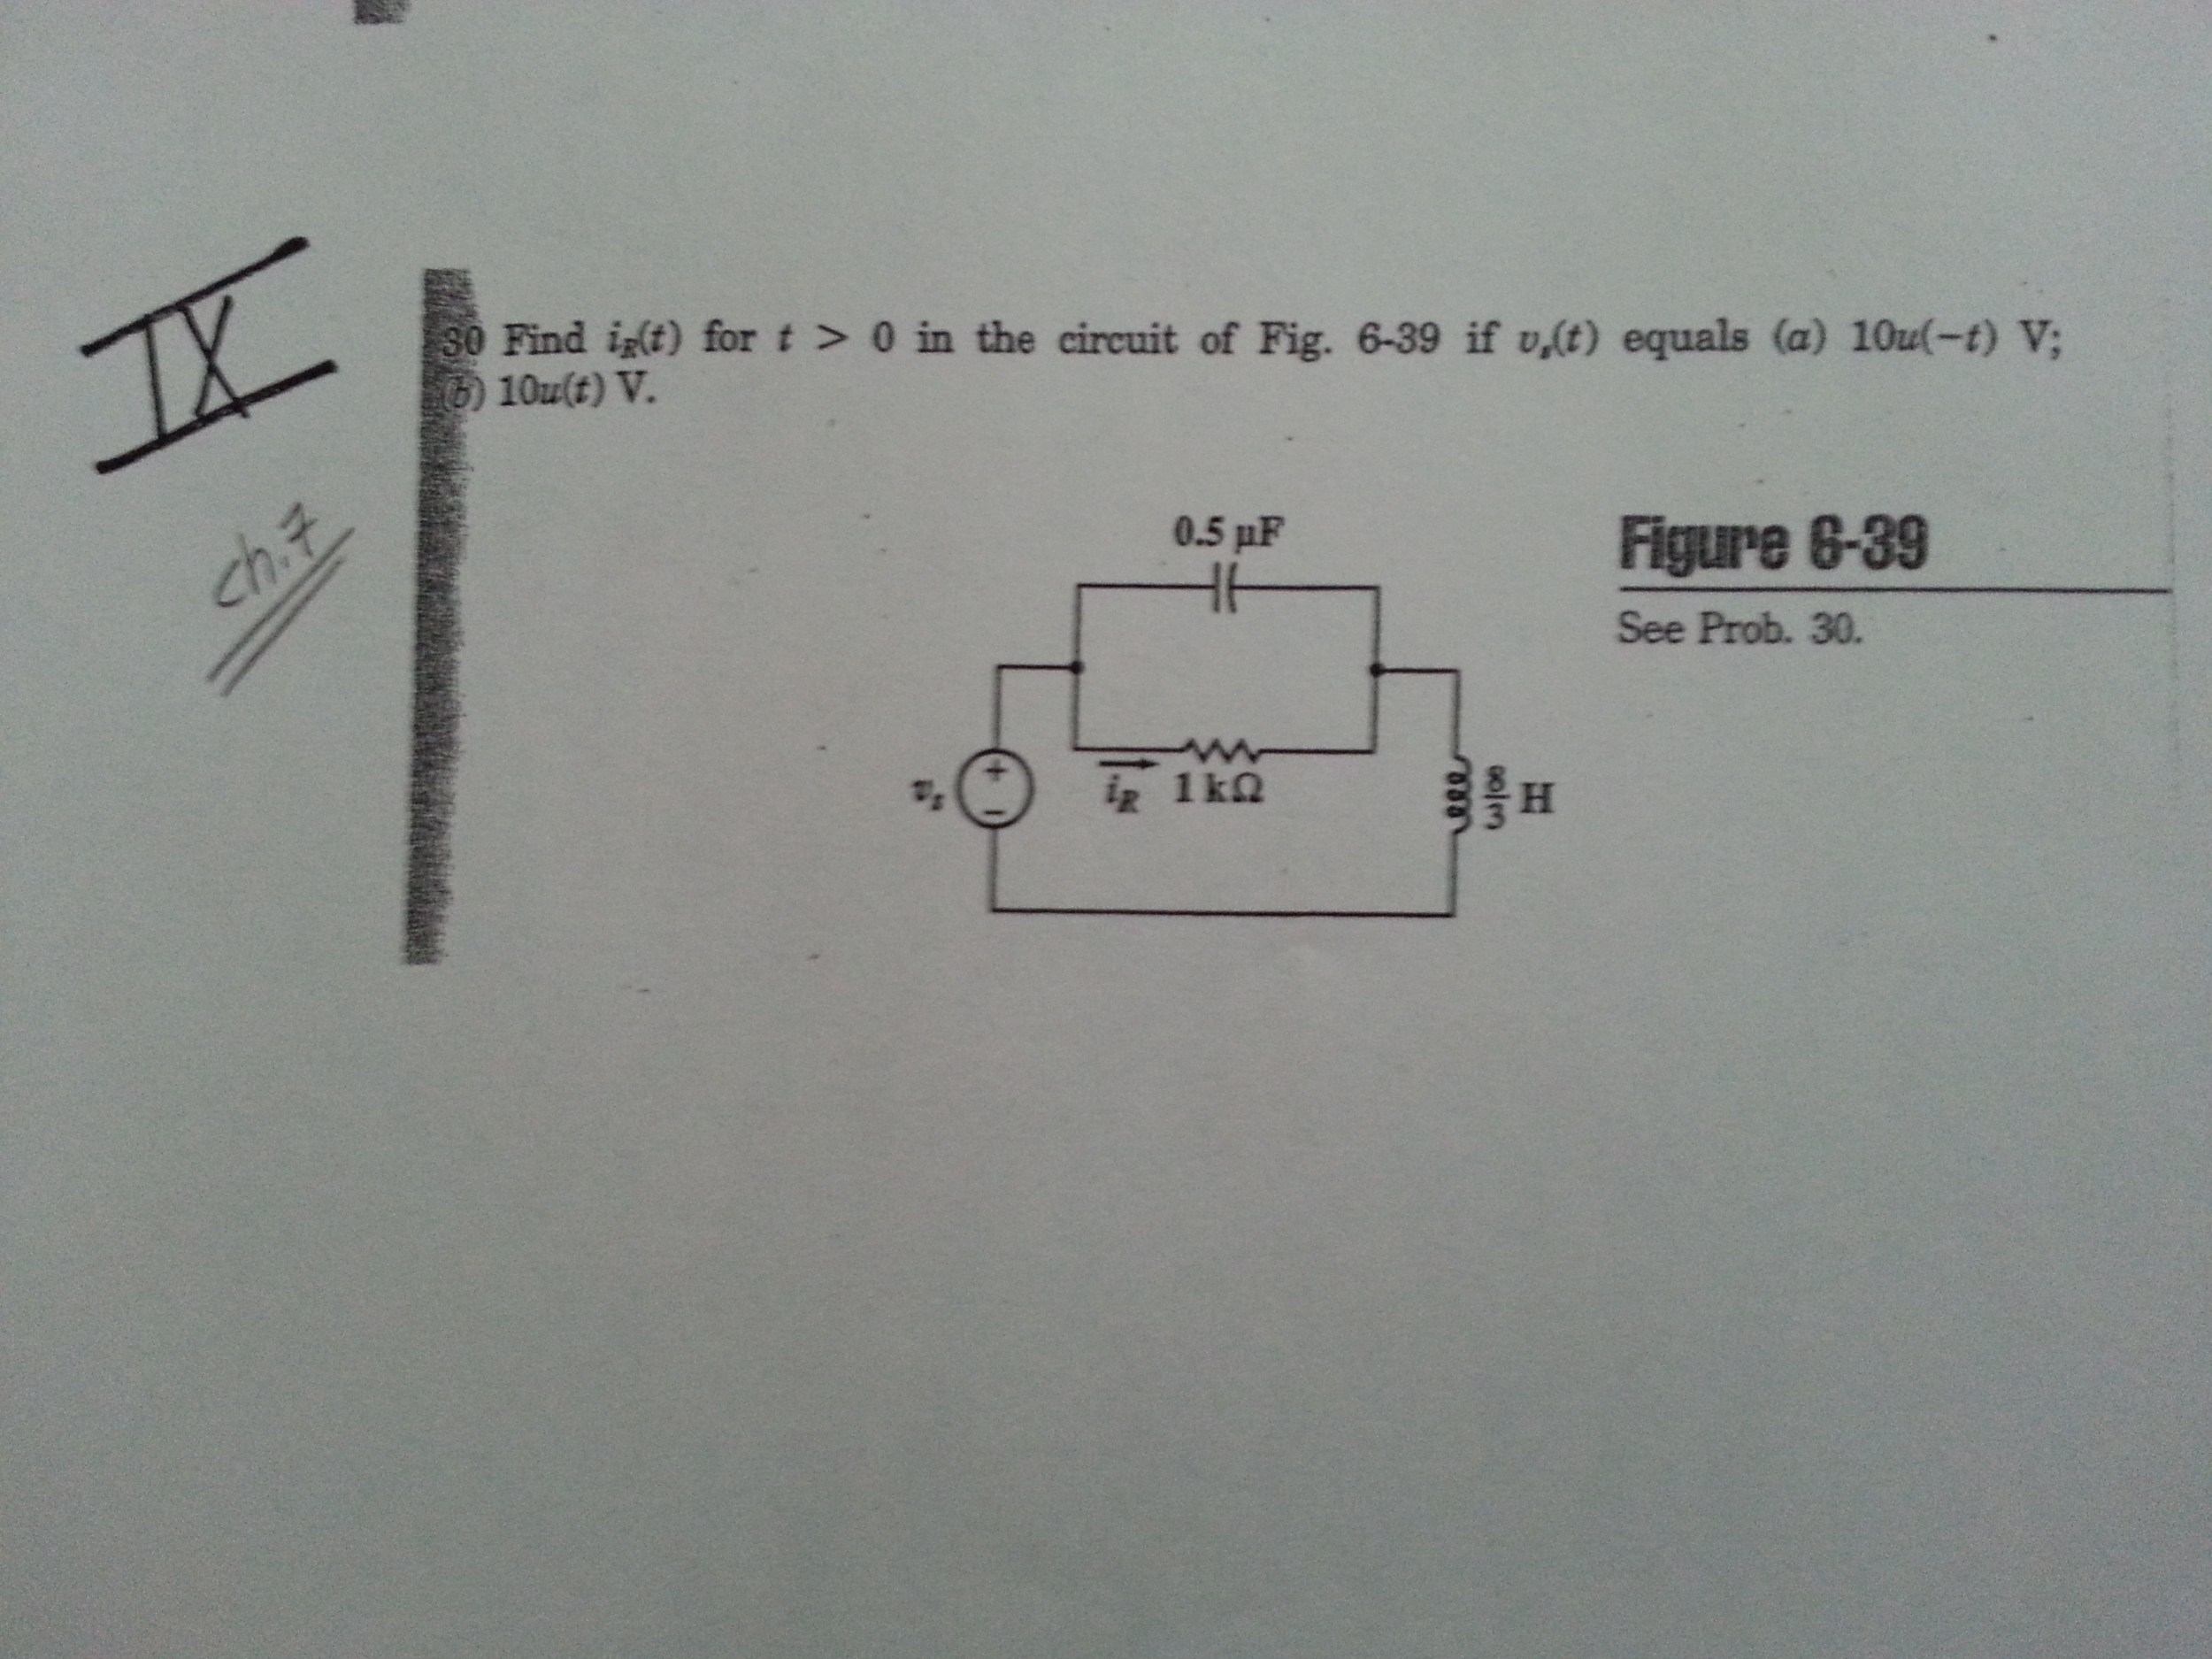 Find ig(v) for t > 0 in the circuit of Fig. 6-39 i